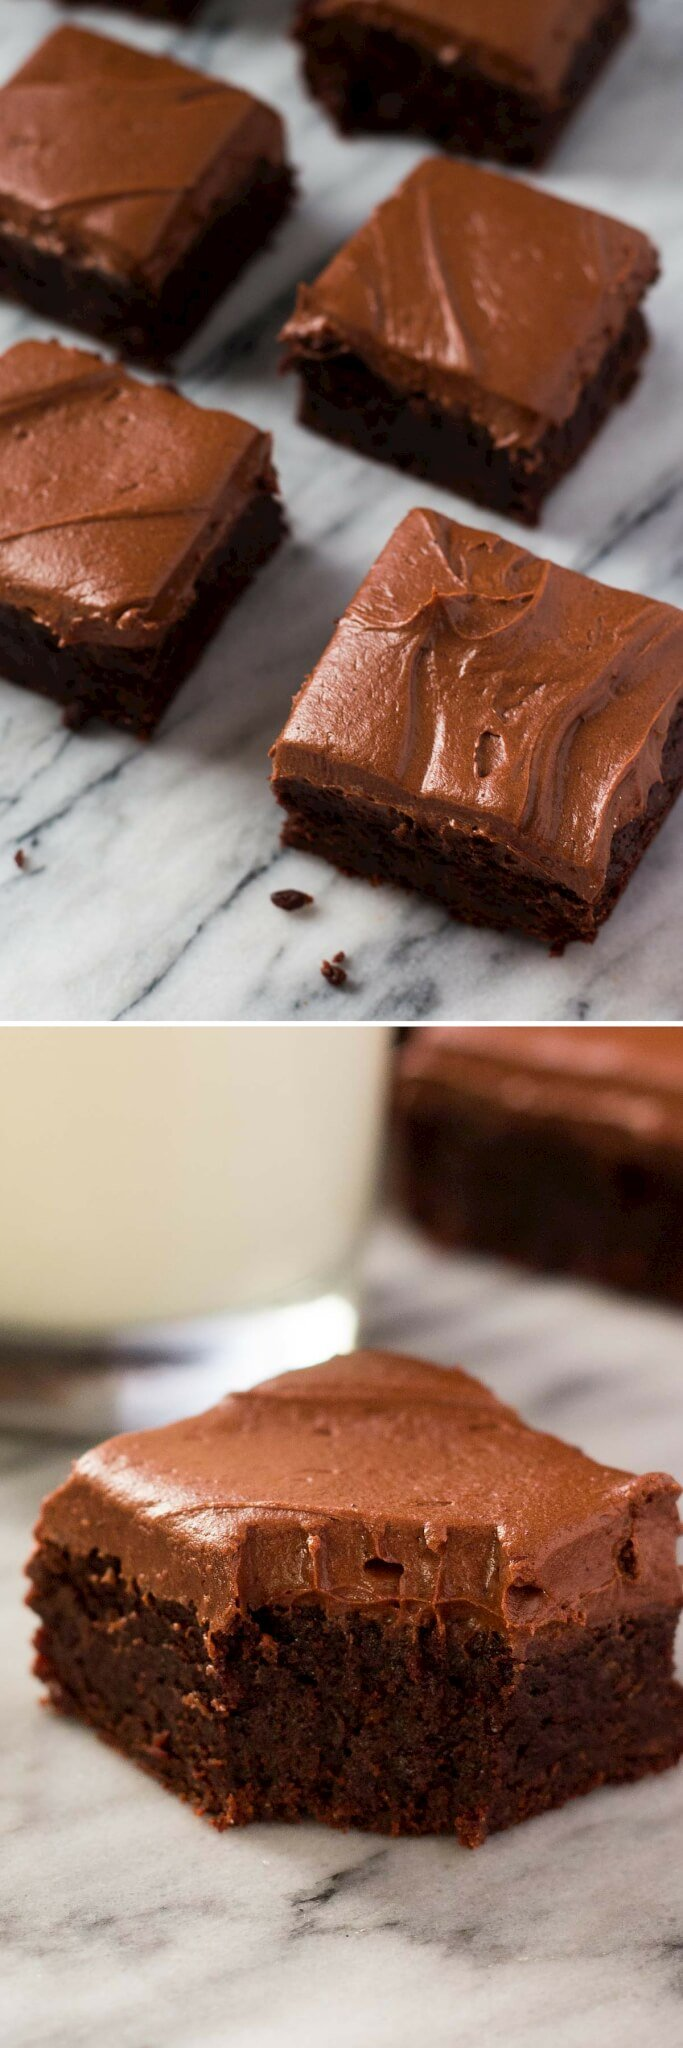 Fudge Brownies with Chocolate Frosting - Just So Tasty